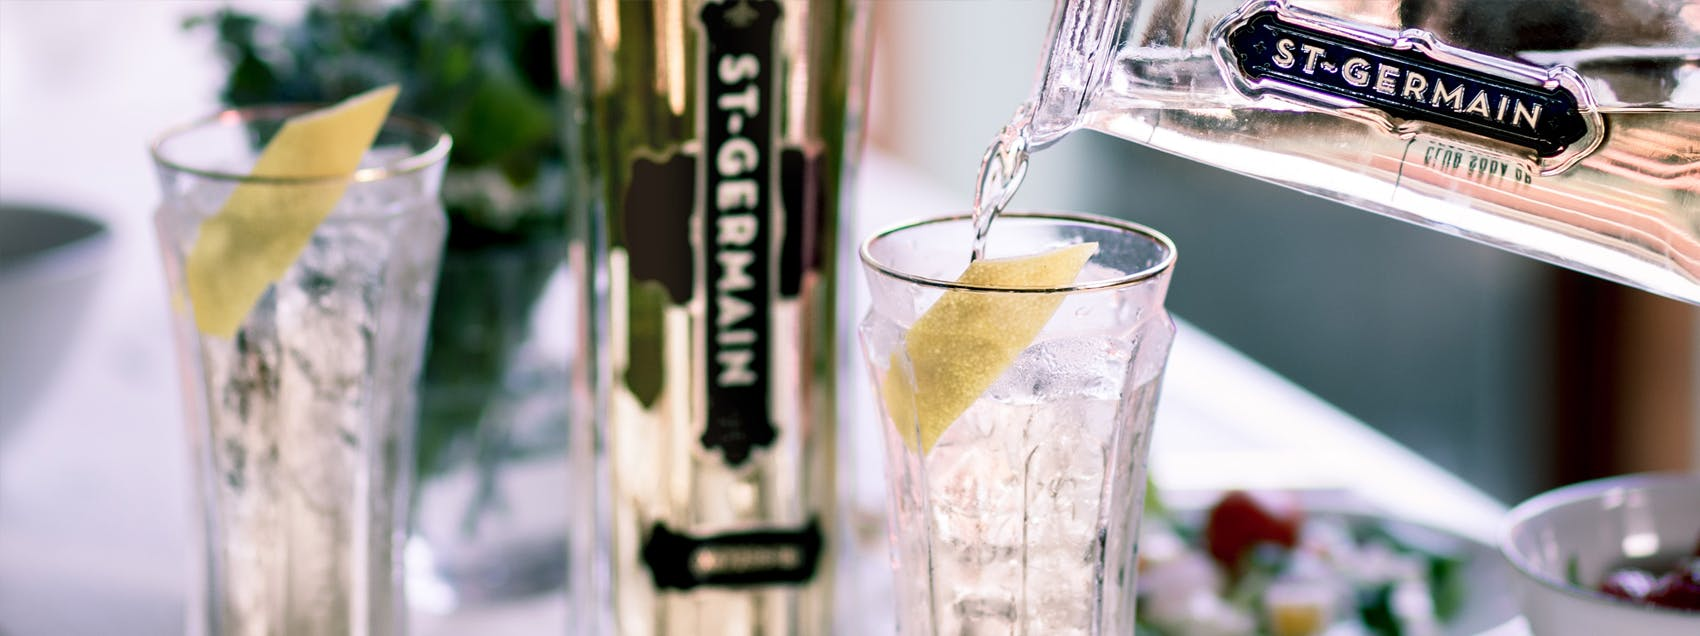 The St-Germain Spritz